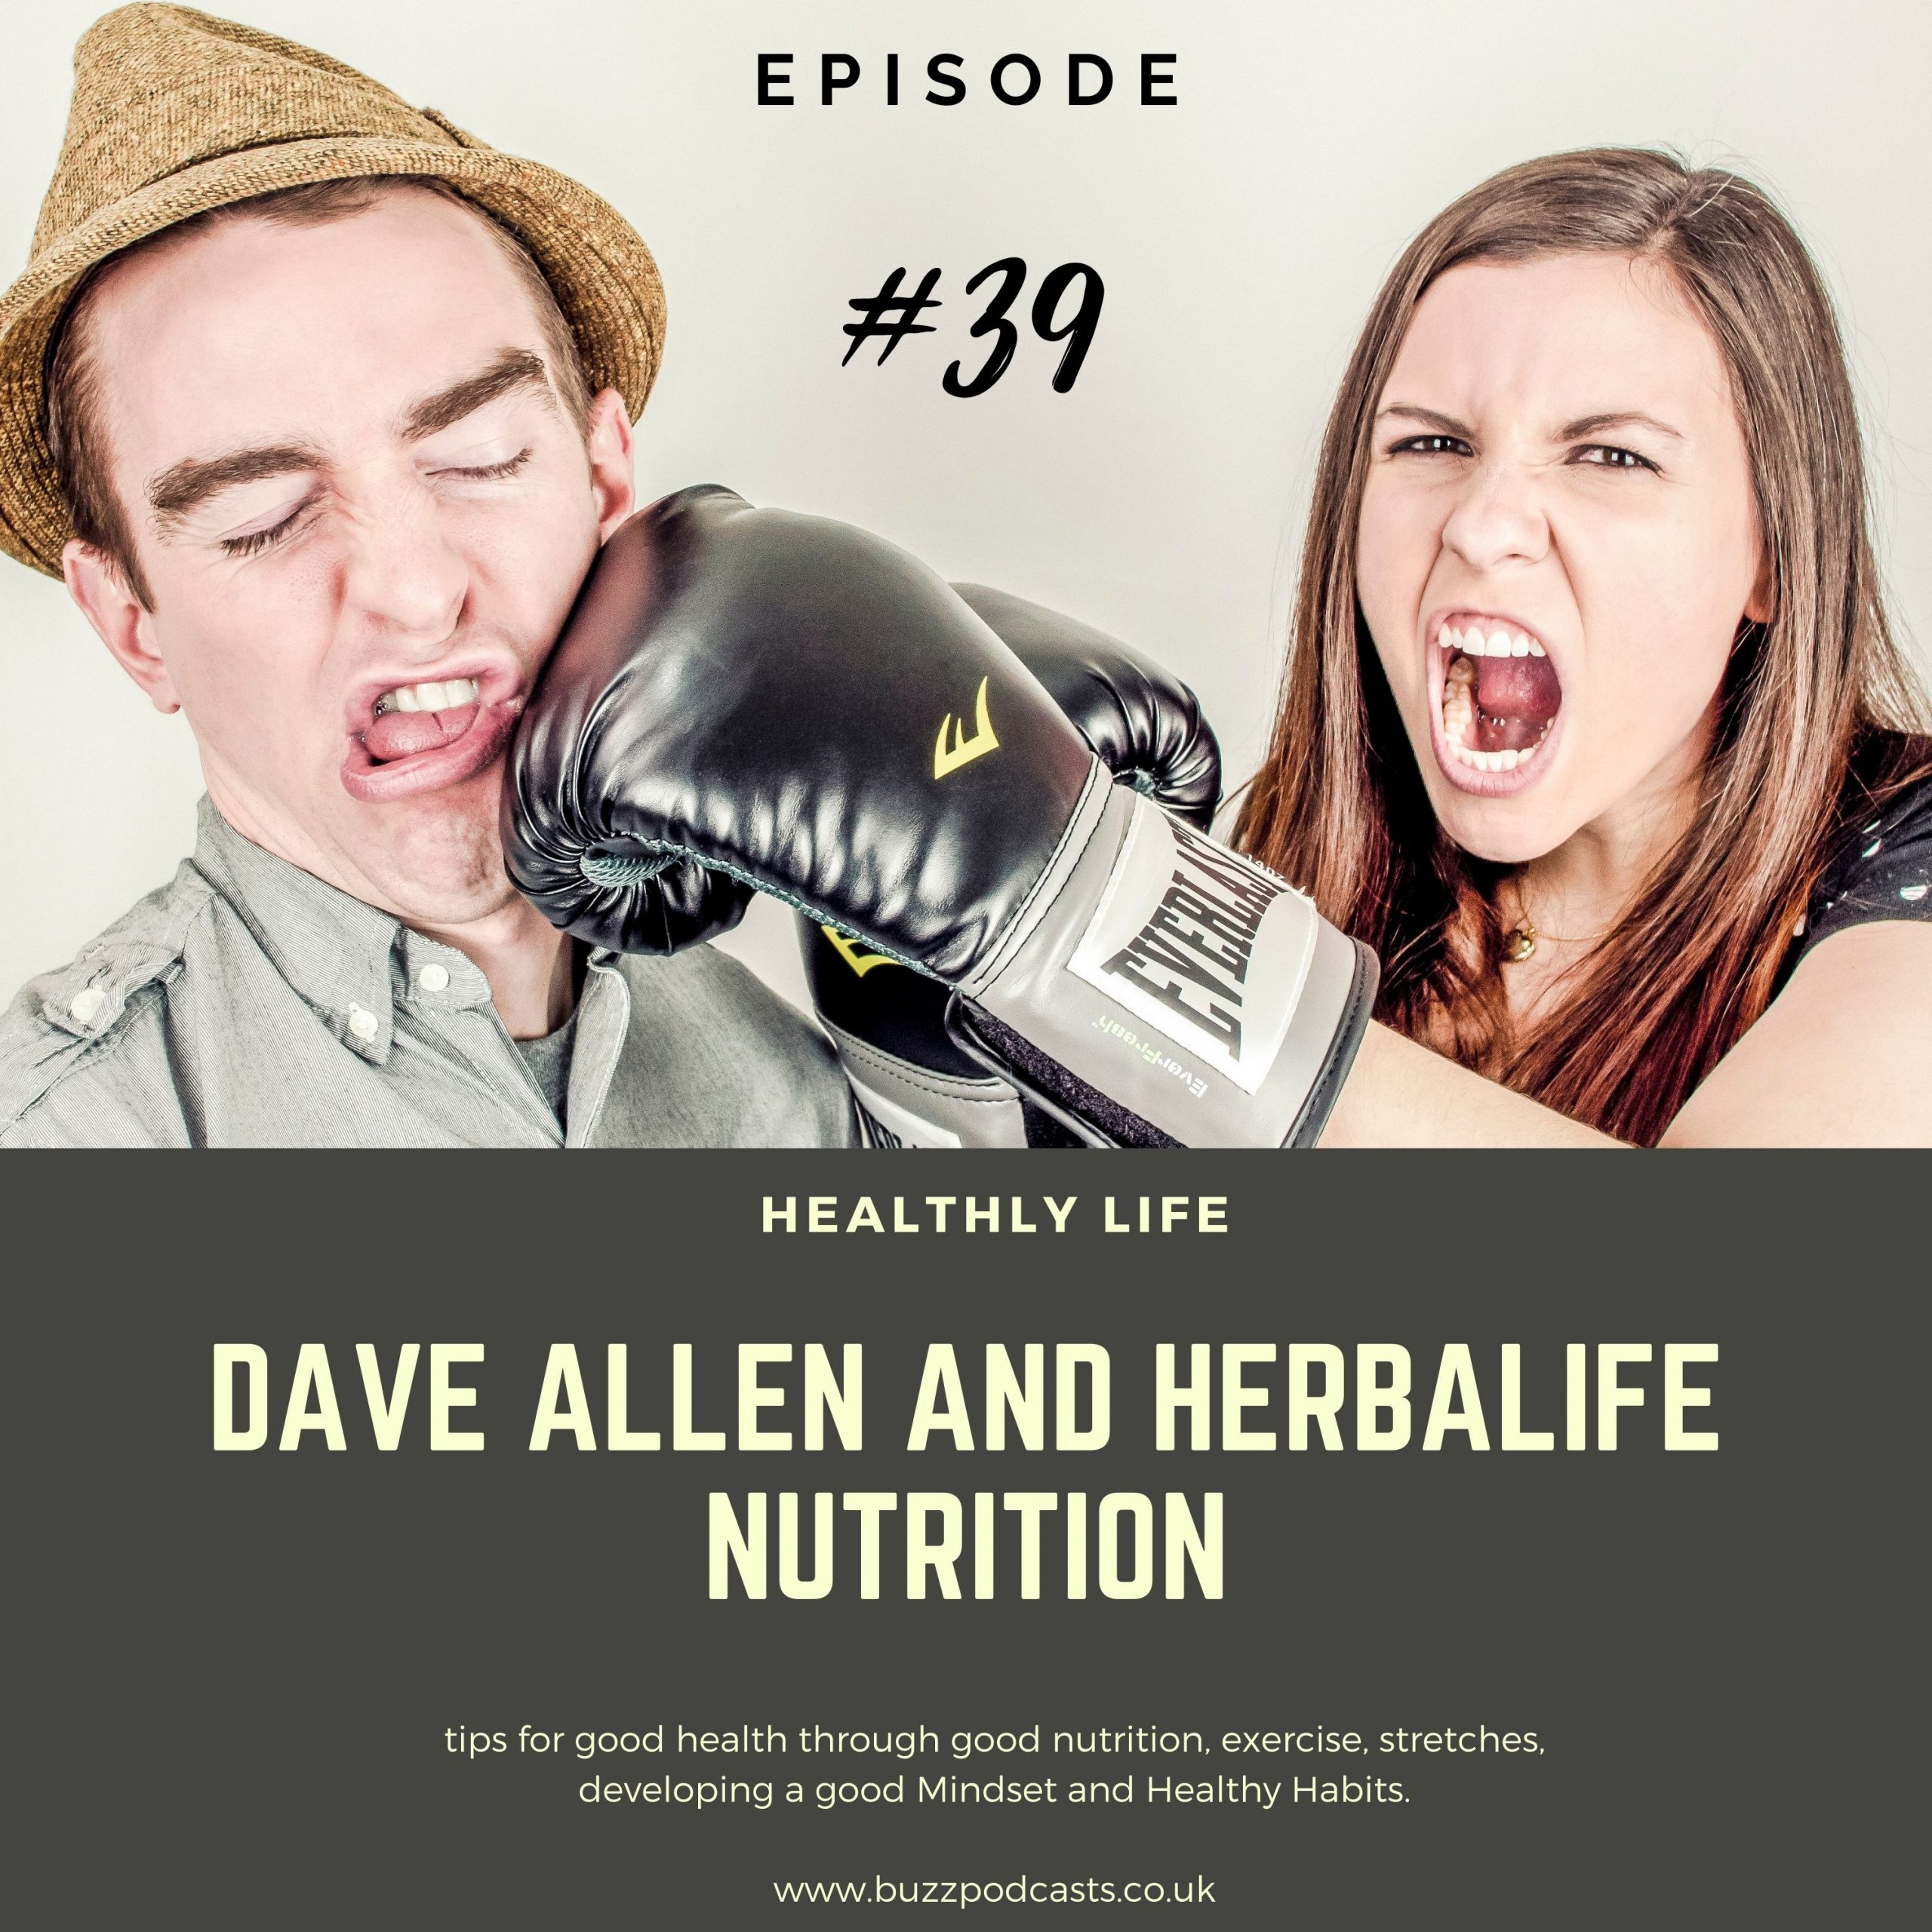 Dave Allen and Herbalife Nutrition